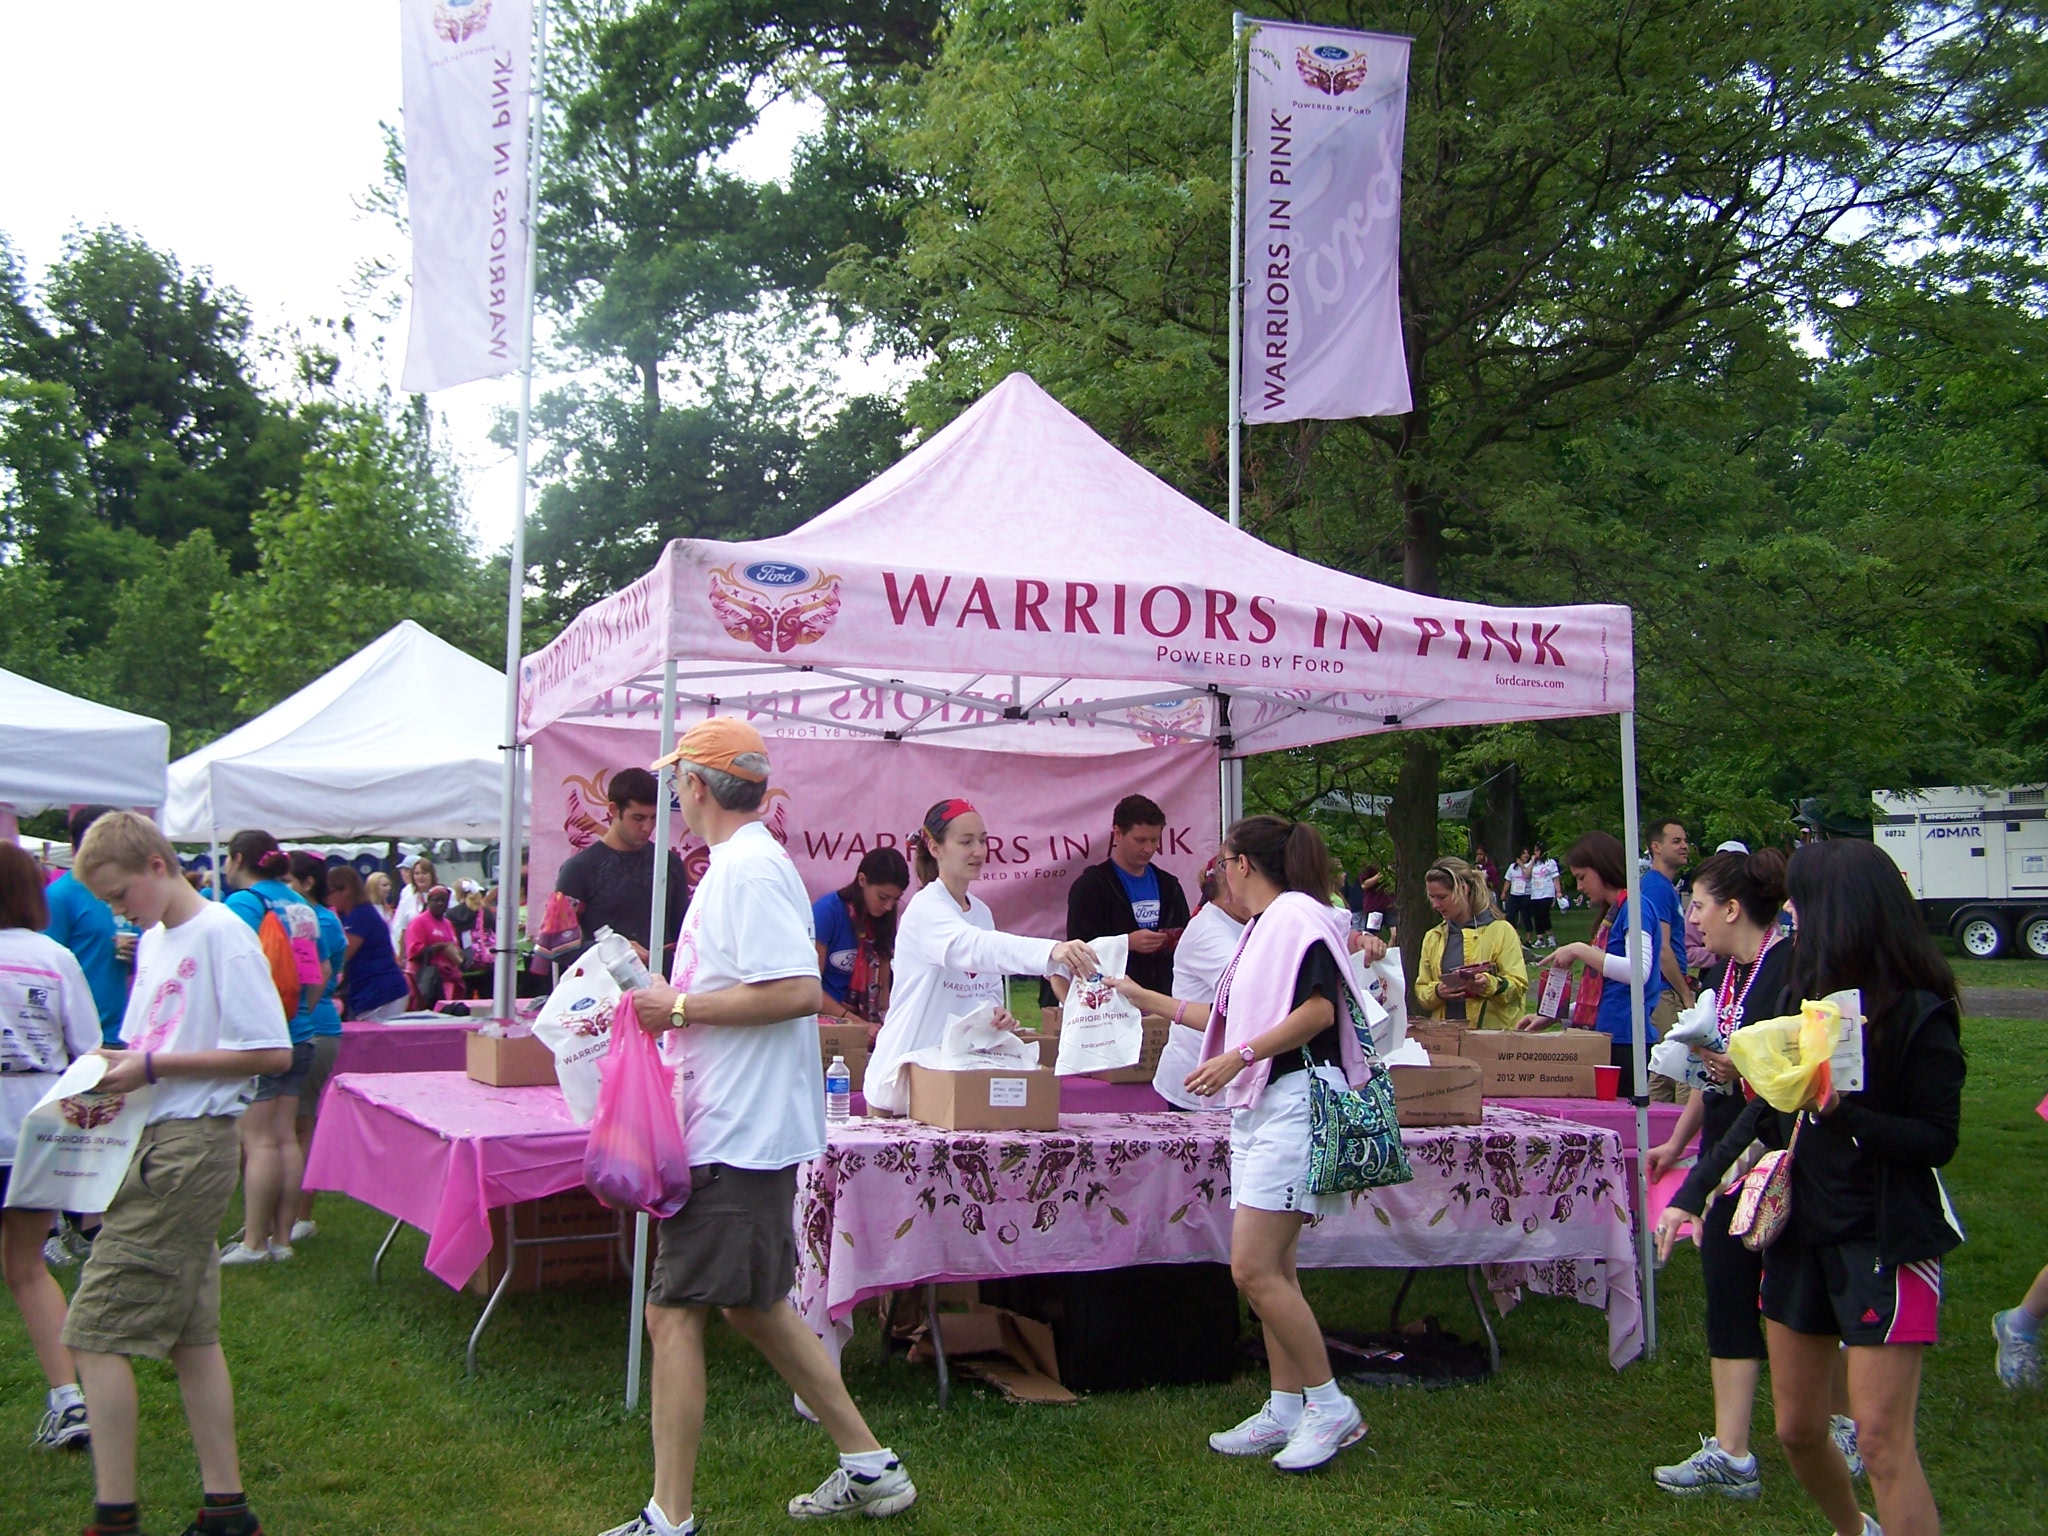 Nationally, Ford provides &quot;Warriors in Pink&quot; scarves to participants at Susan G. Komen Race for the Cure events, including Western New York. Every year the scarves feature a unique design.